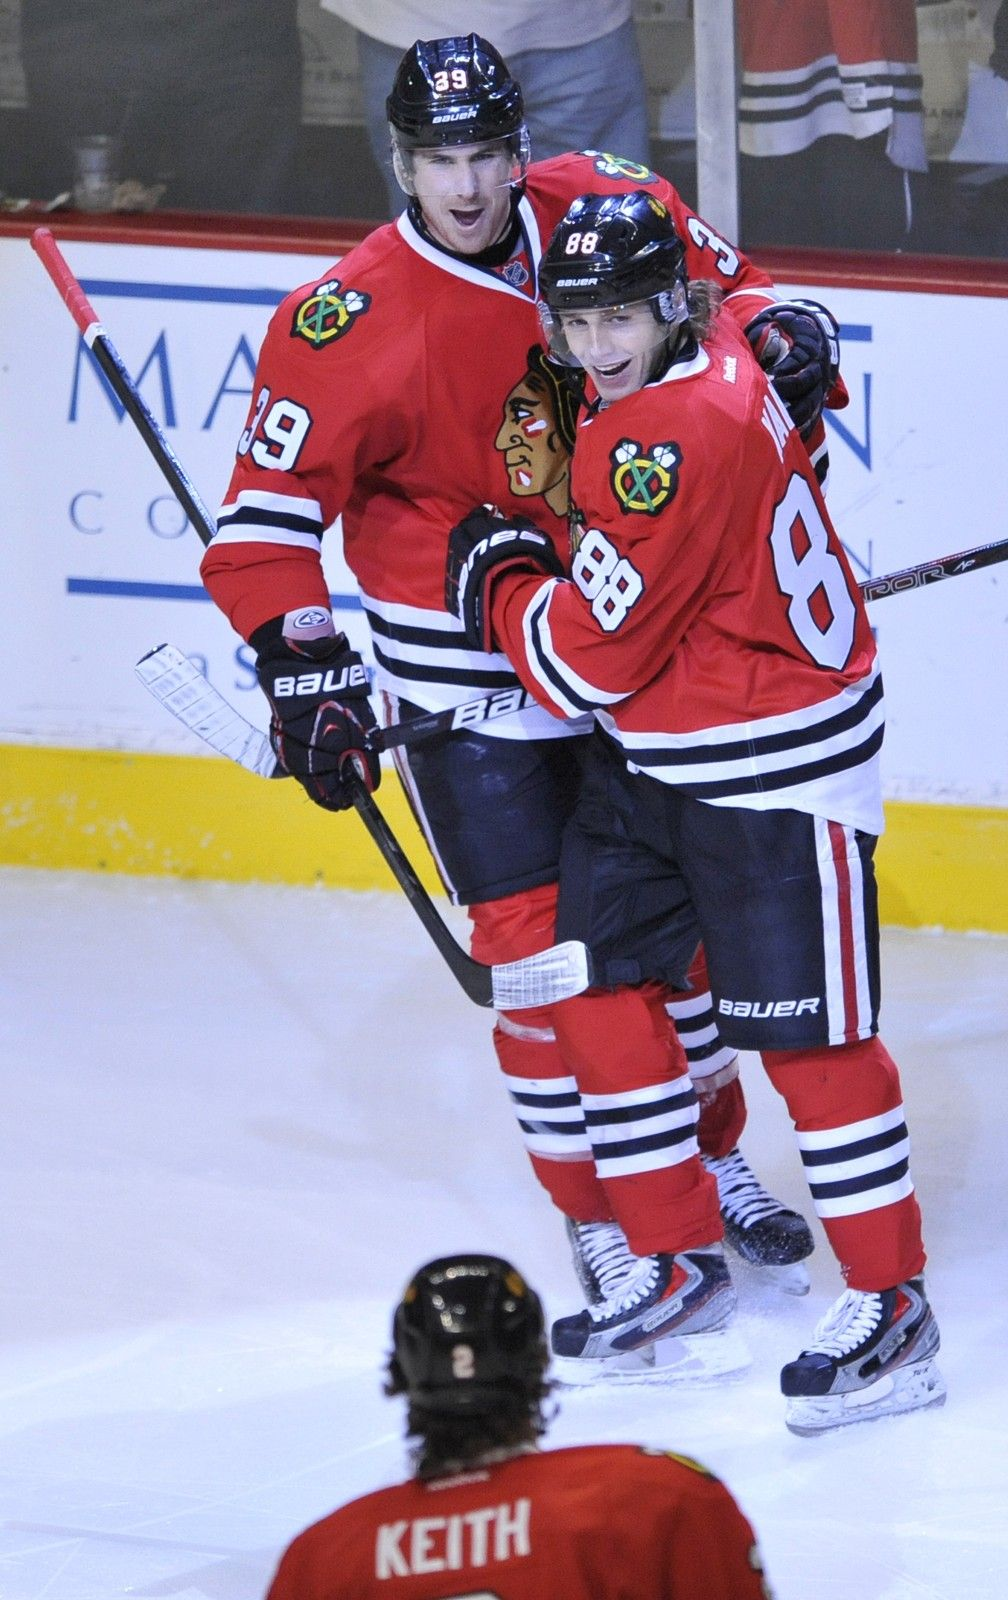 Jimmy Hayes And Patrick Kane 3 29 13 Blackhawks Hockey Black N Red Patrick Kane